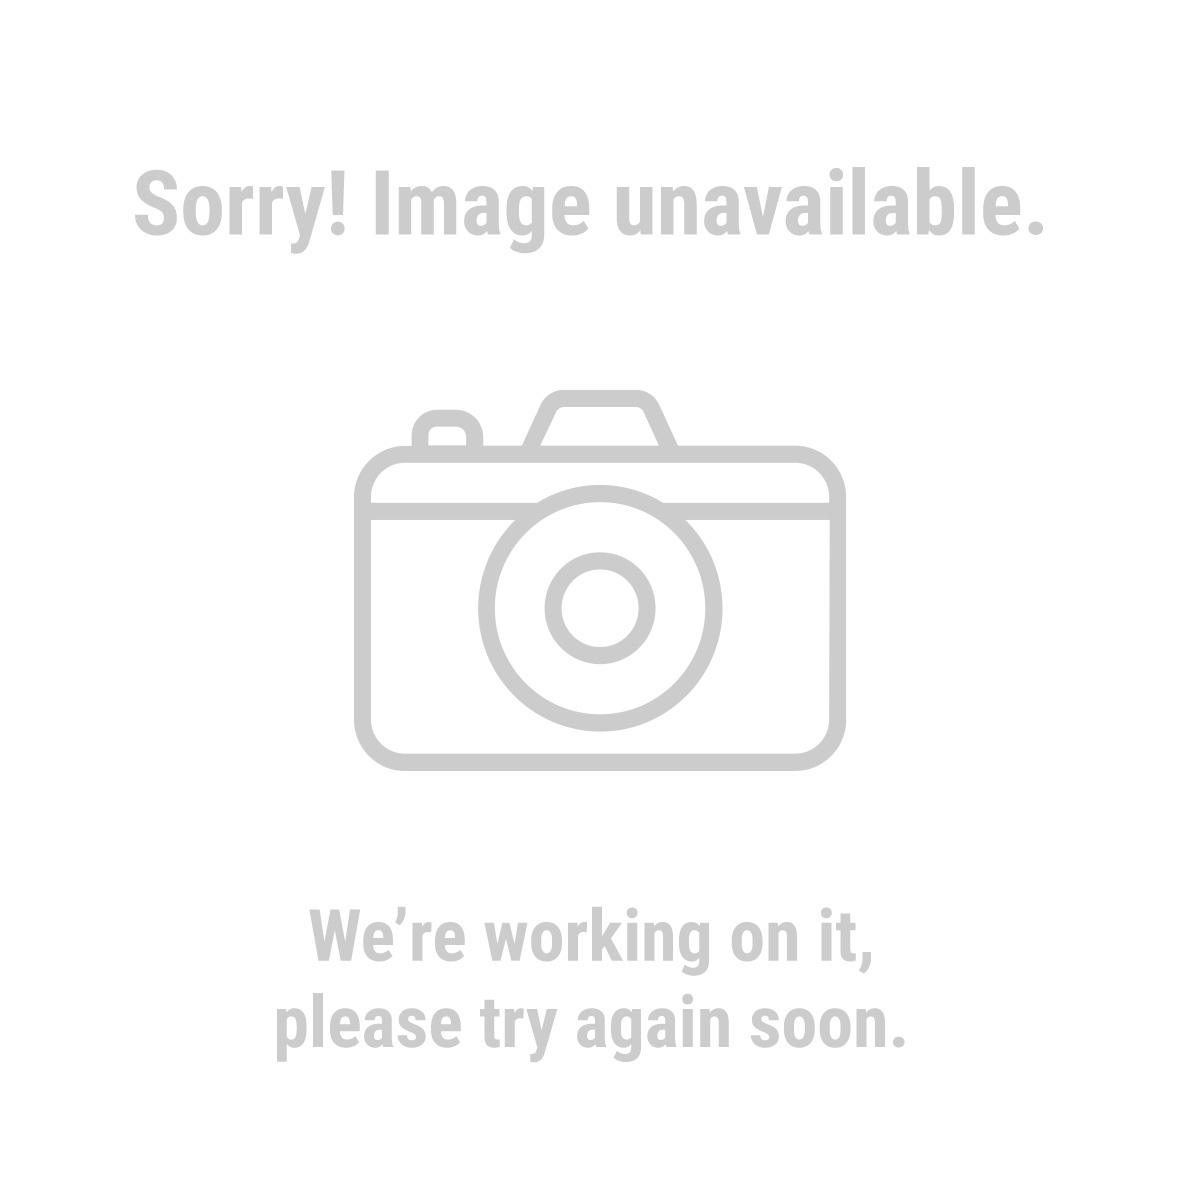 Pittsburgh Automotive 92349 12 Volt 1/2 In. Emergency Impact Wrench